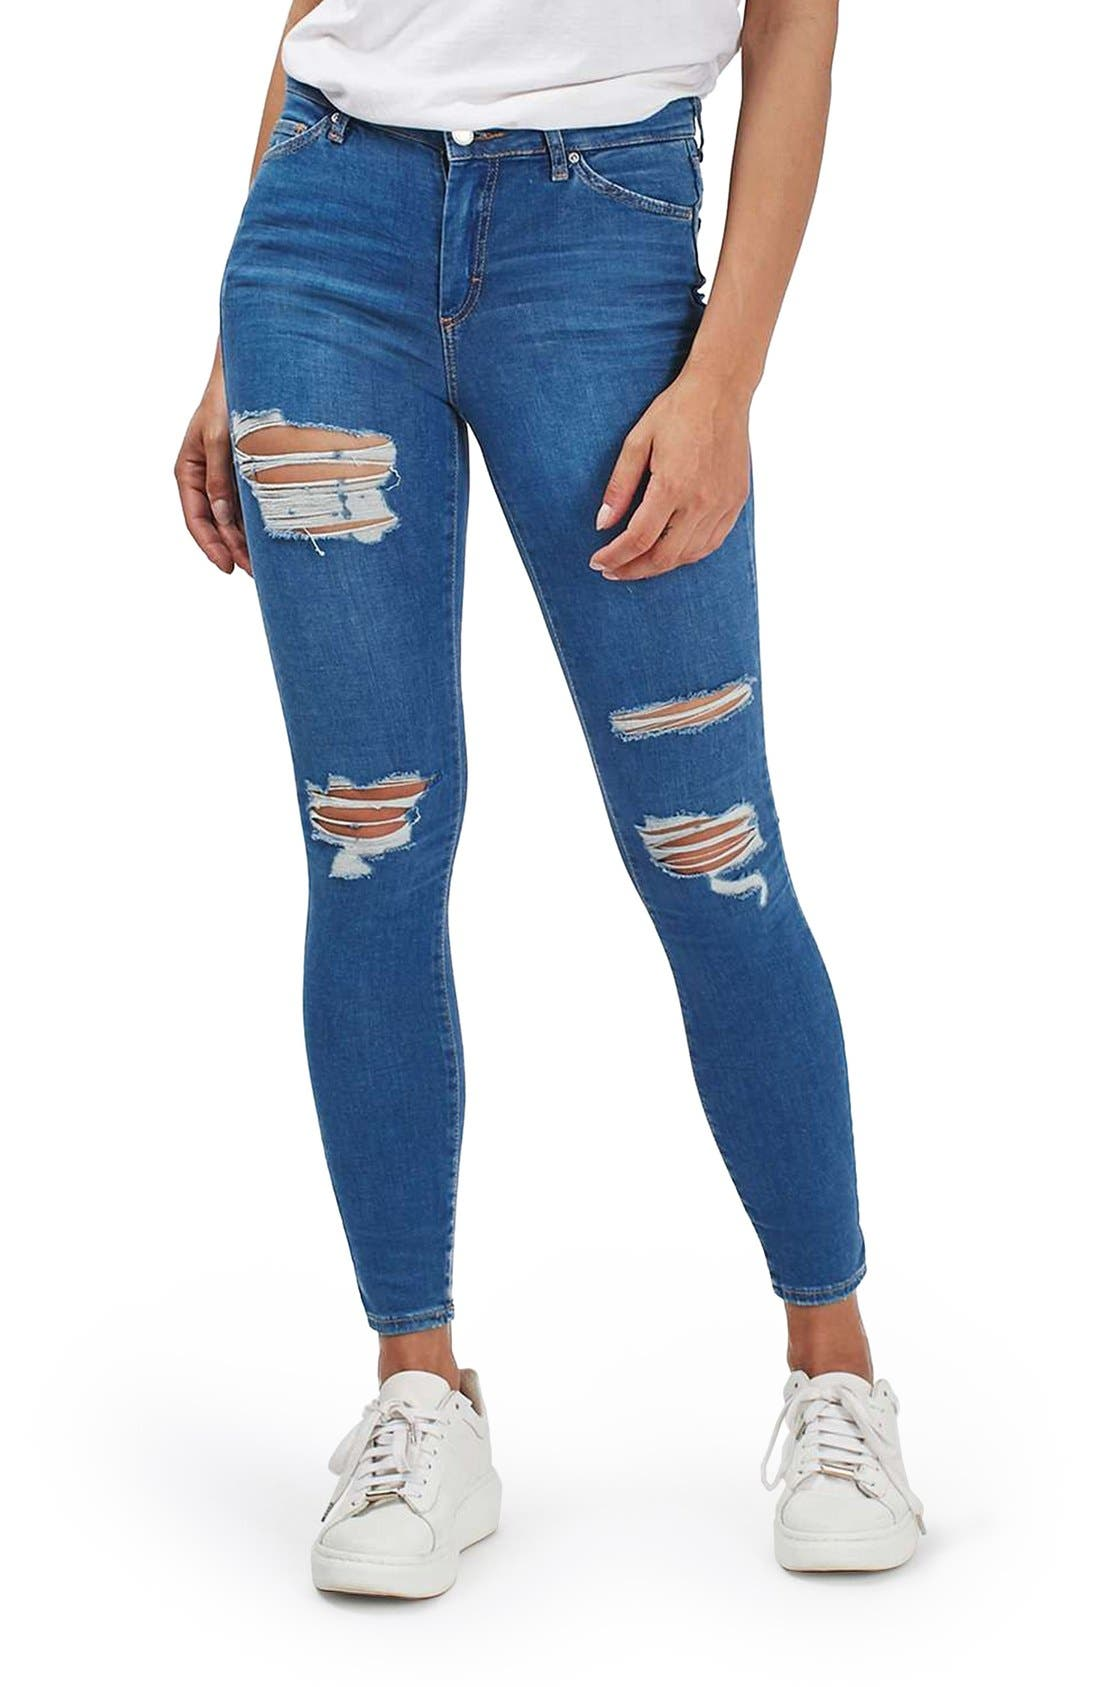 Alternate Image 1 Selected - Topshop Moto Leigh Super Ripped Ankle Skinny Jeans